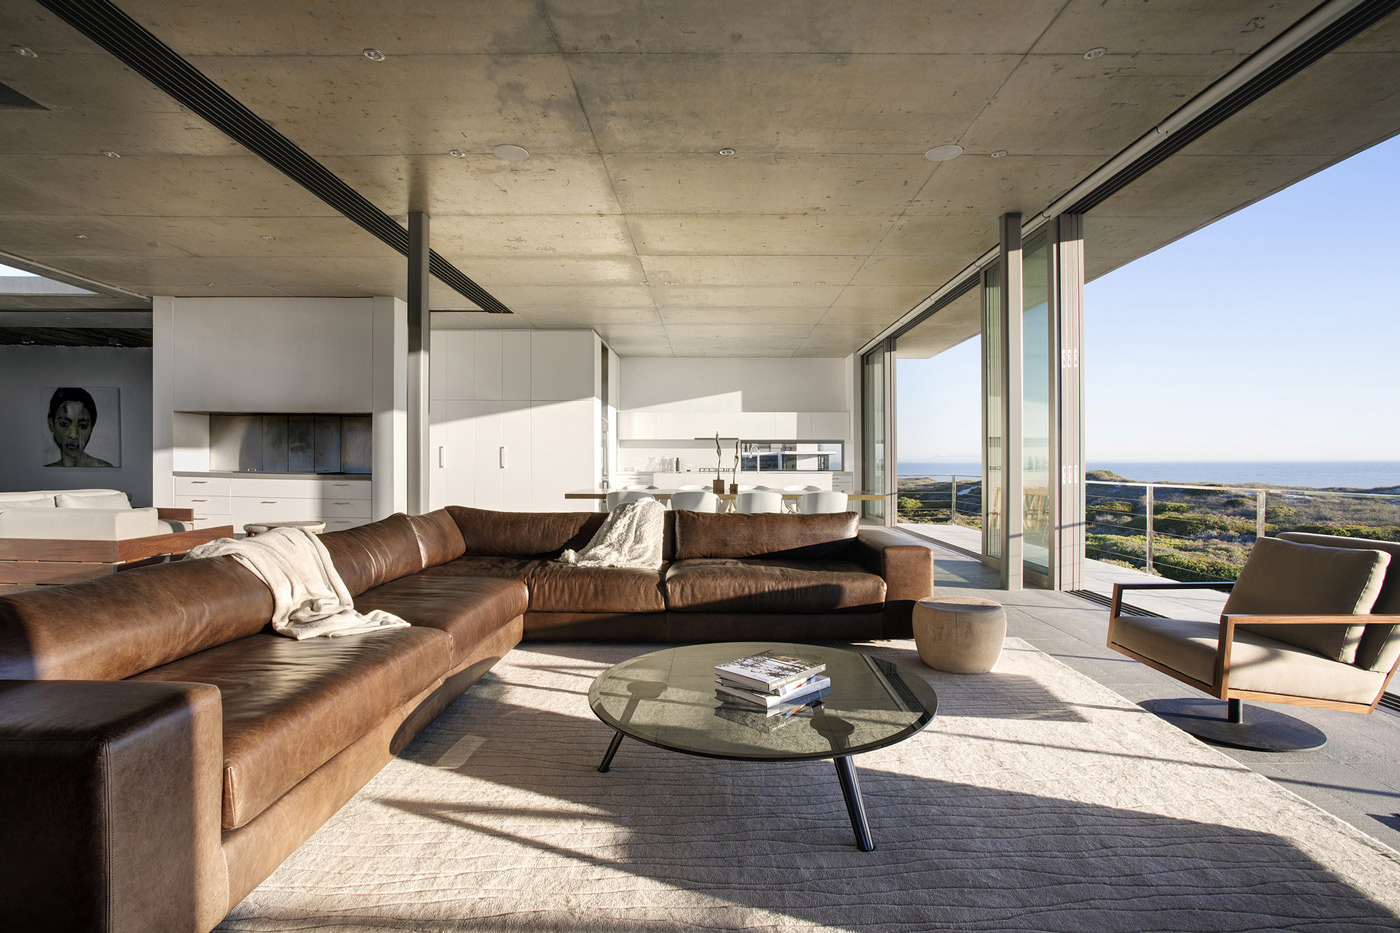 Sofa, Coffee Table, Rug, Glass Sliding Doors, Holiday Home in Yzerfontein, South Africa